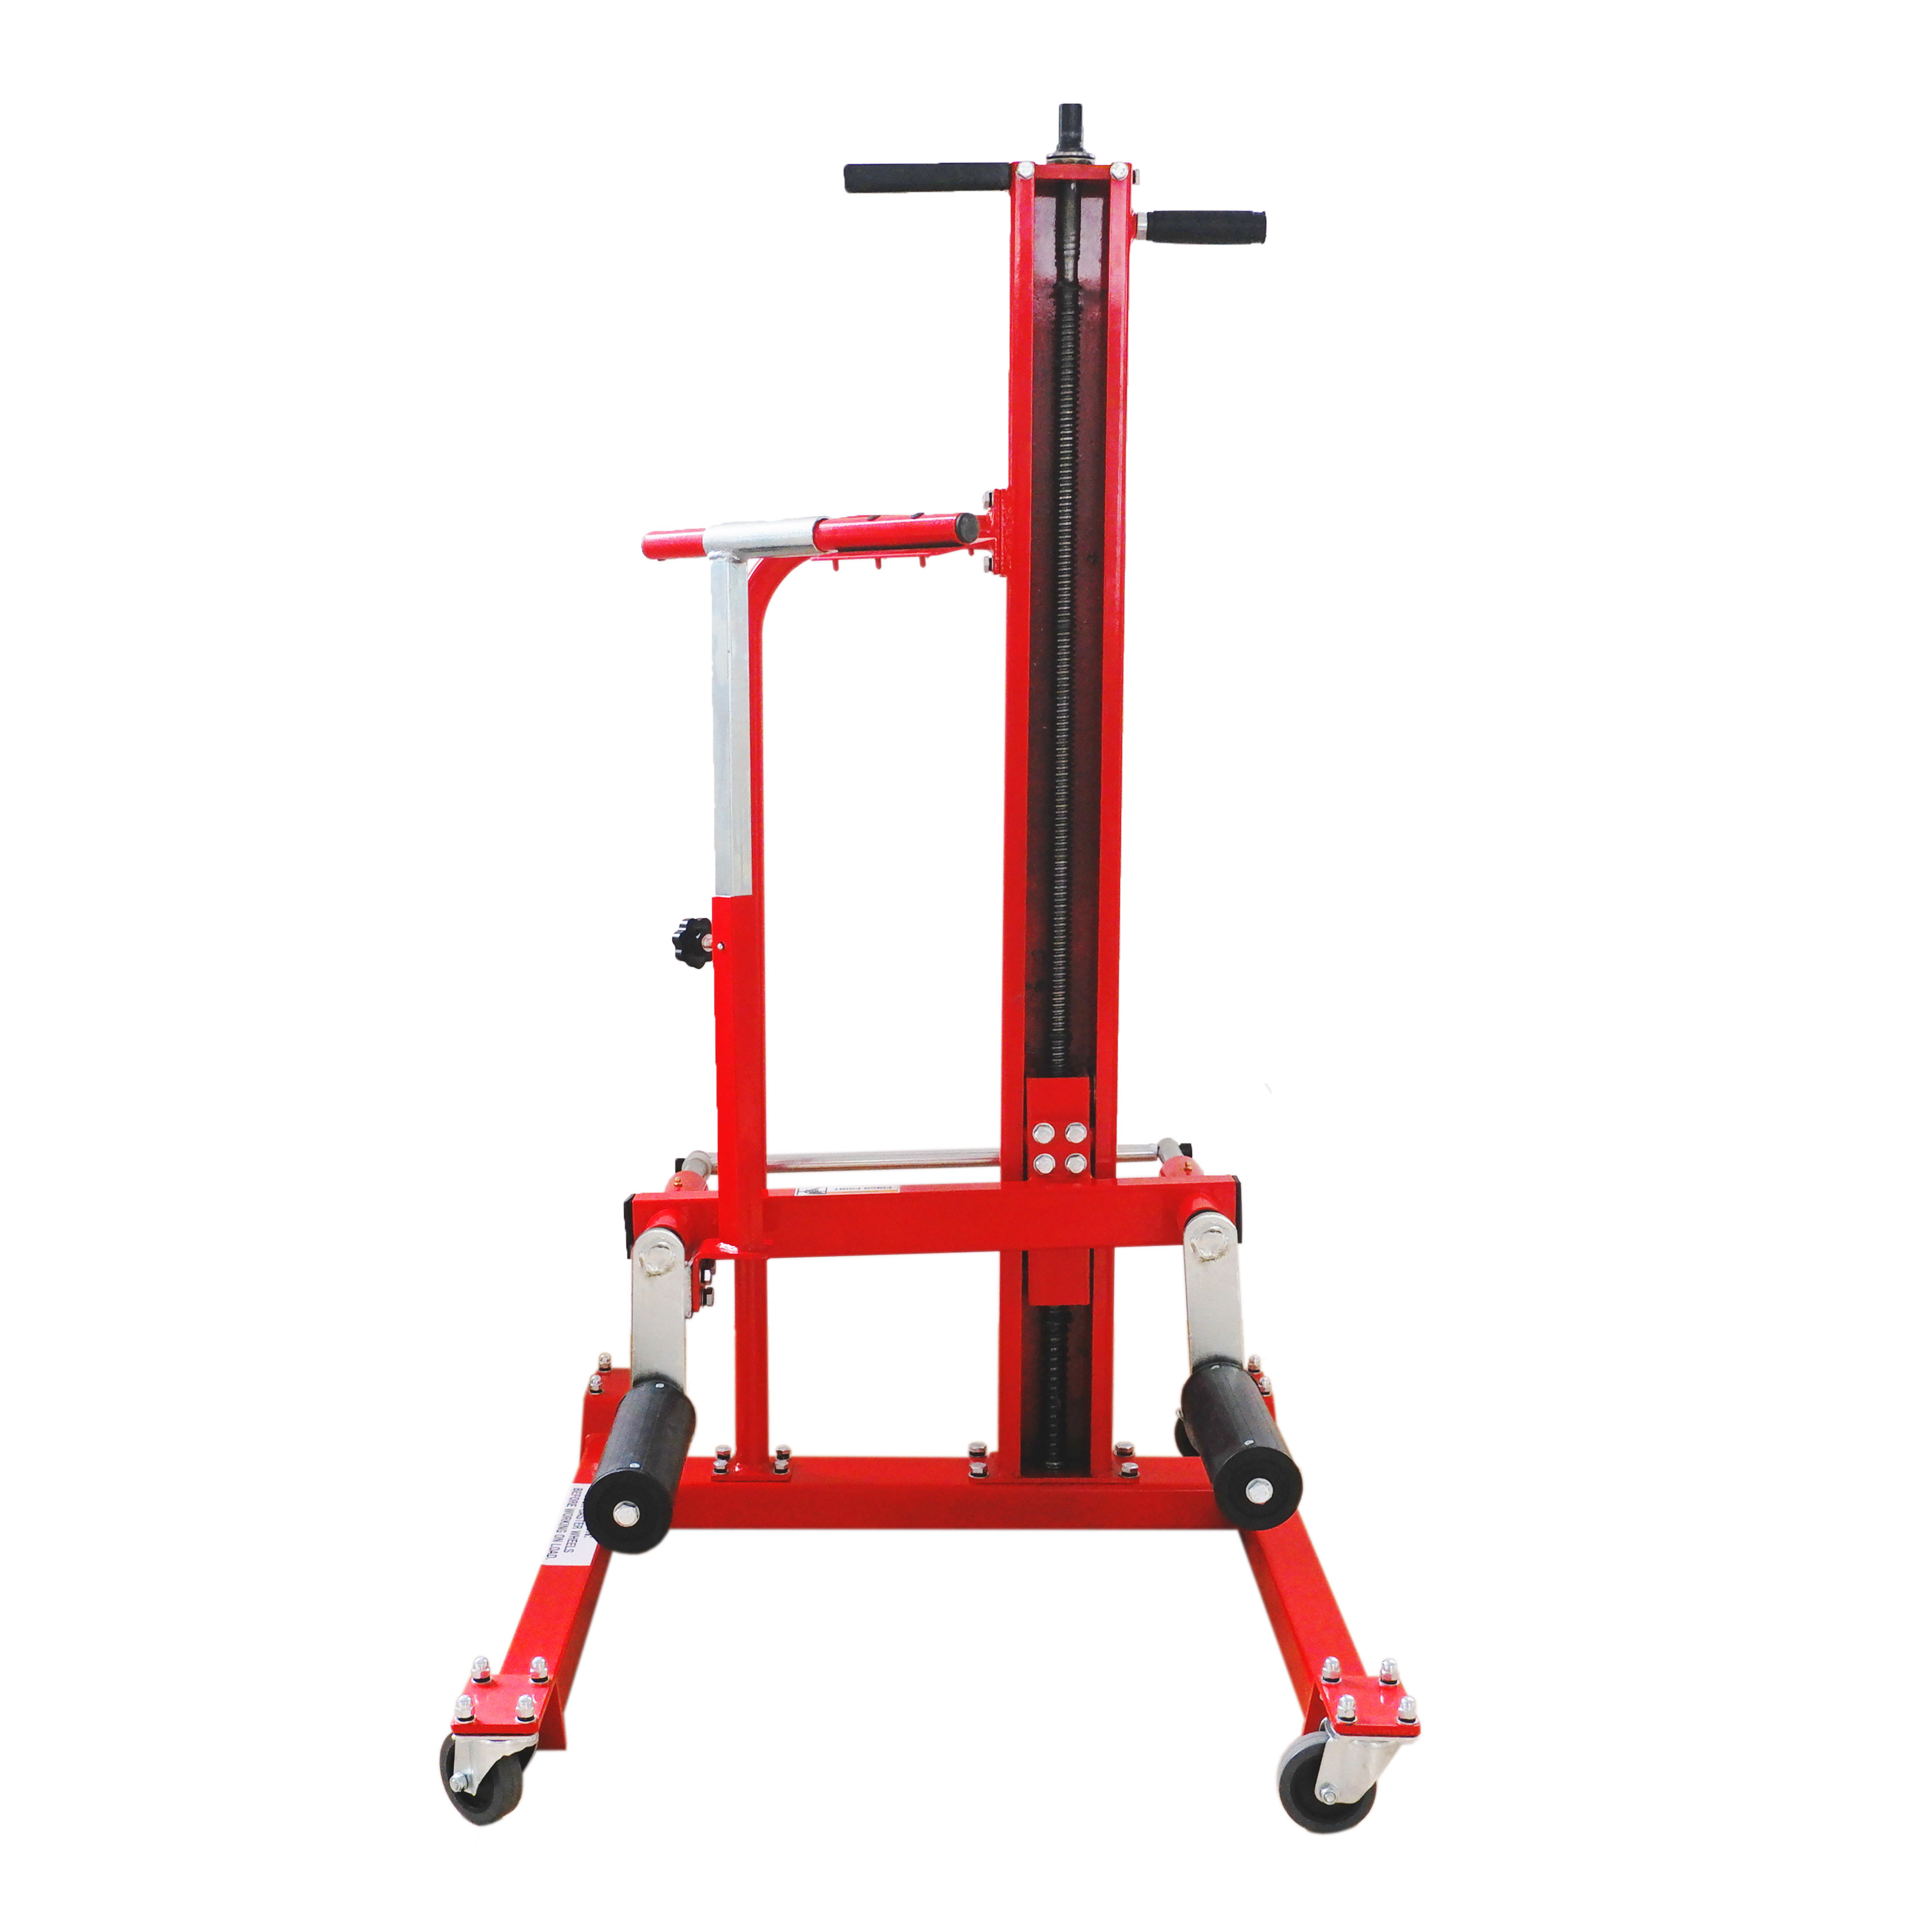 RH-1030 Quick Lift Wheel Lift/Tyre Lifter Featured Image